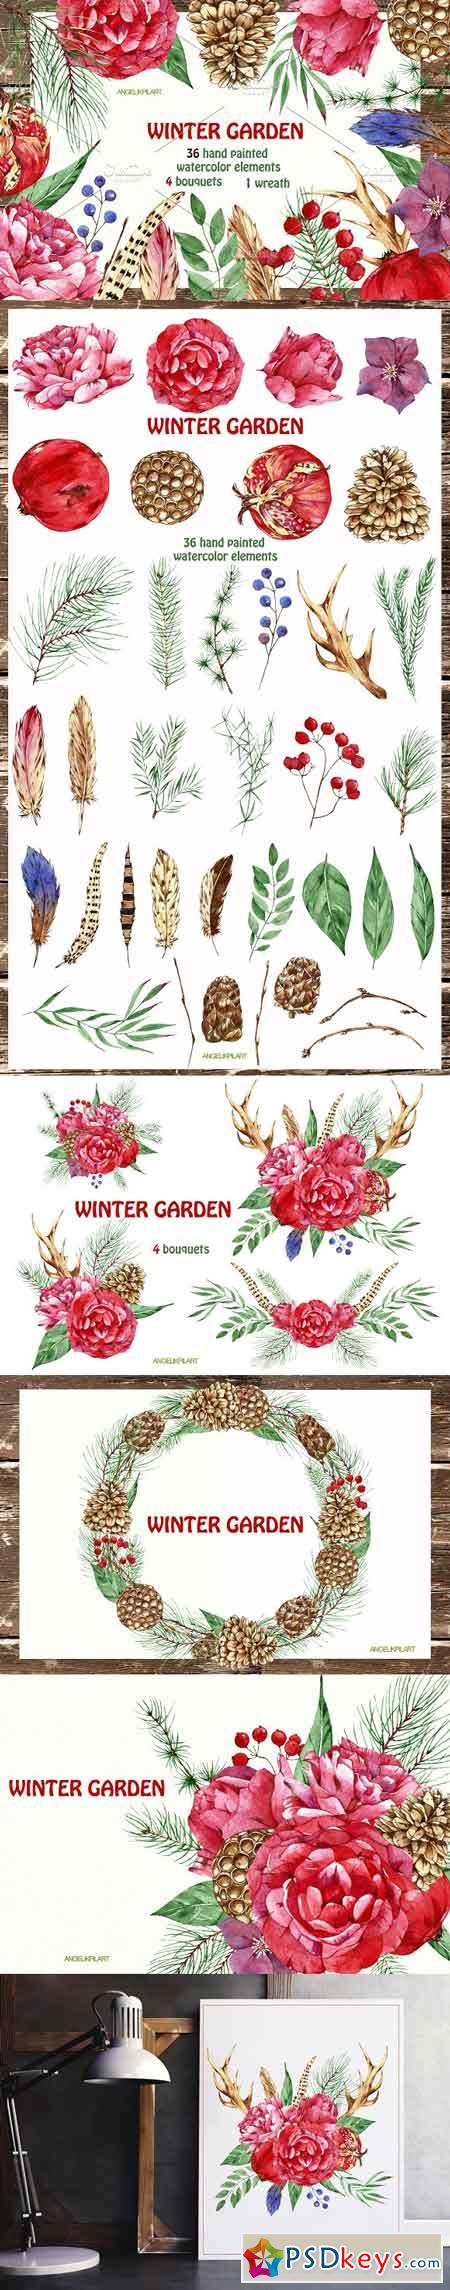 Watercolor set winter garden 2149826